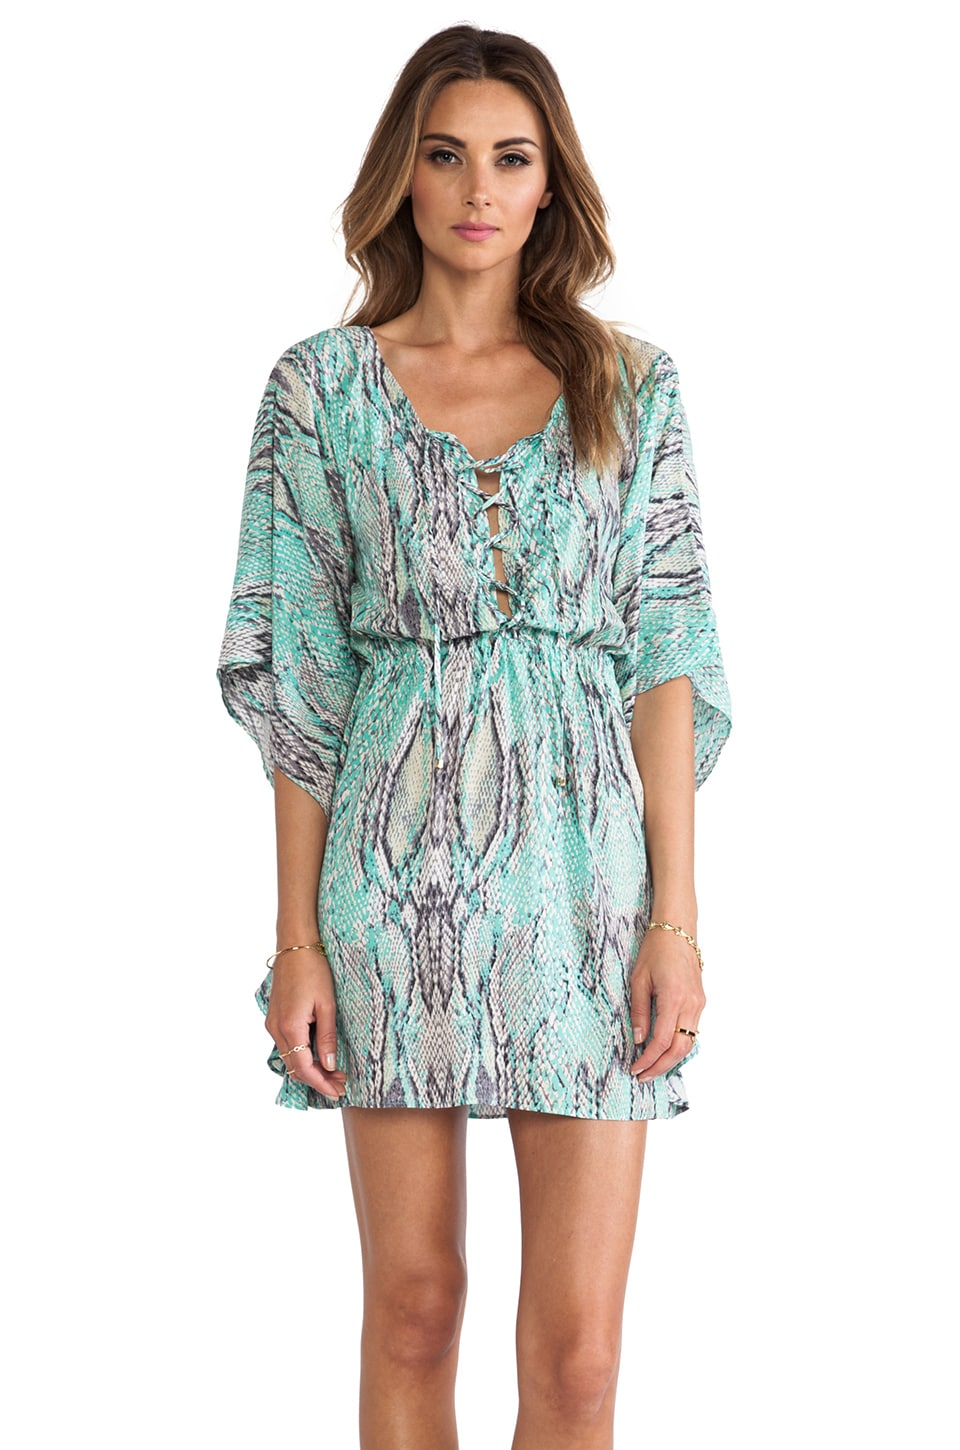 Vix Swimwear Ruda Tracy Caftan in Aqua